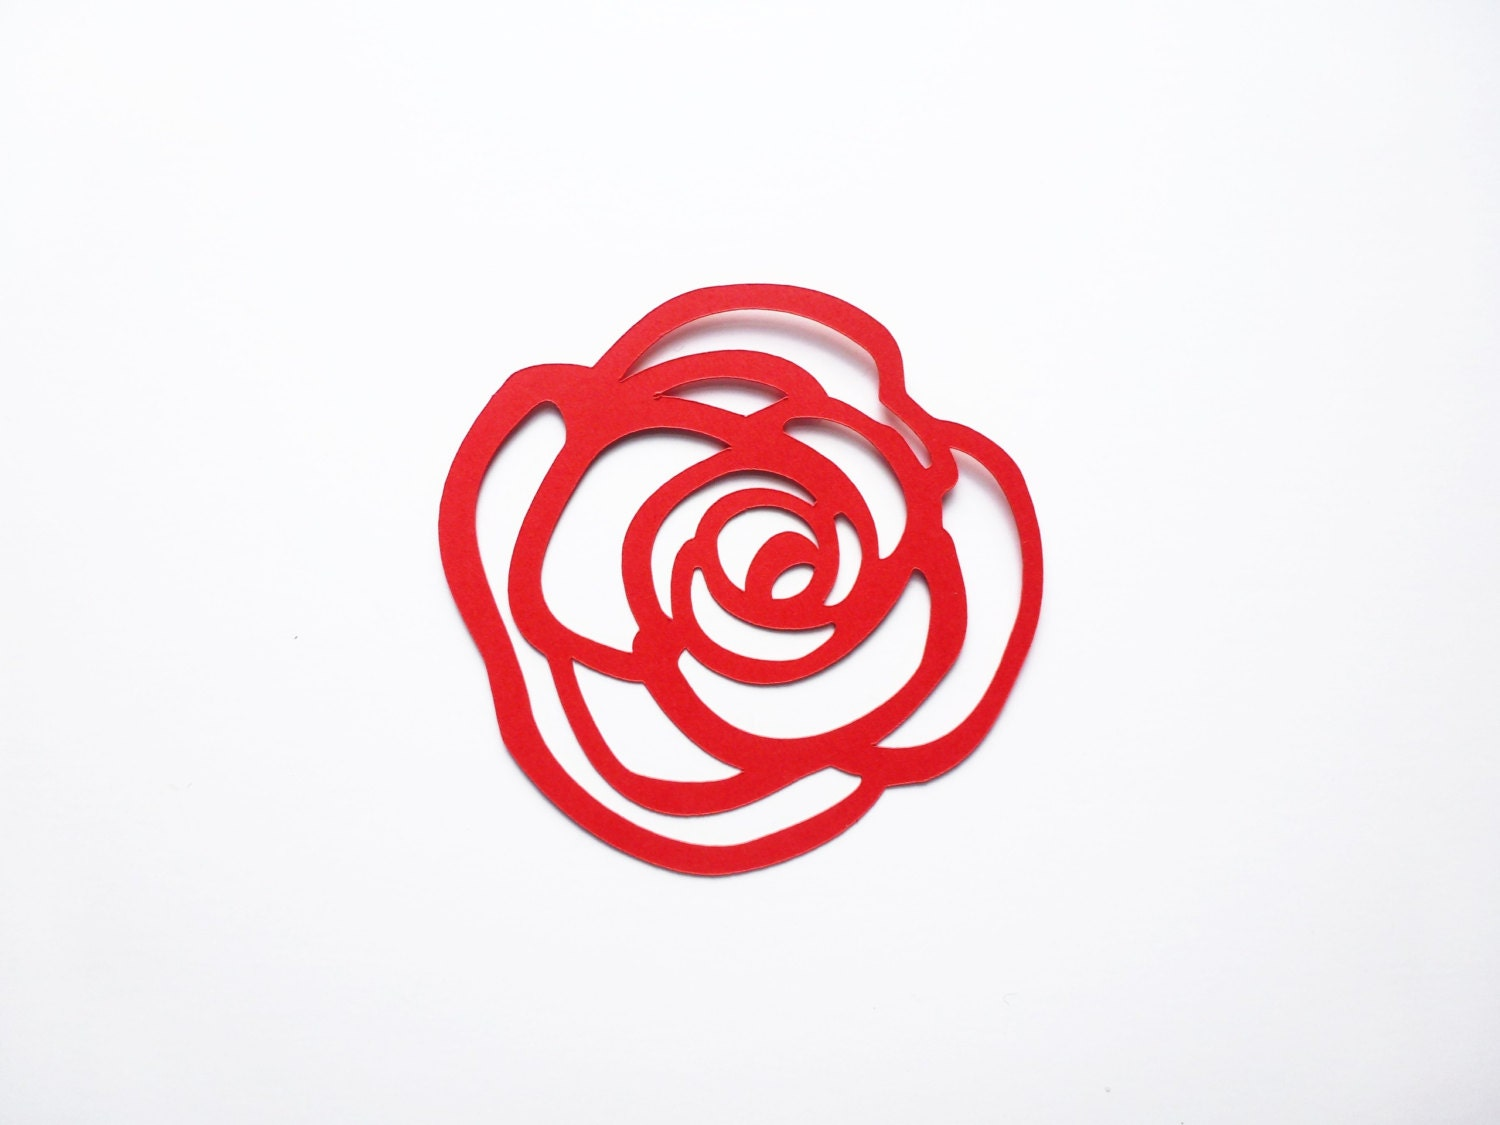 Rose Punch Set Of 10 Rose Outline Flower Paper Punches